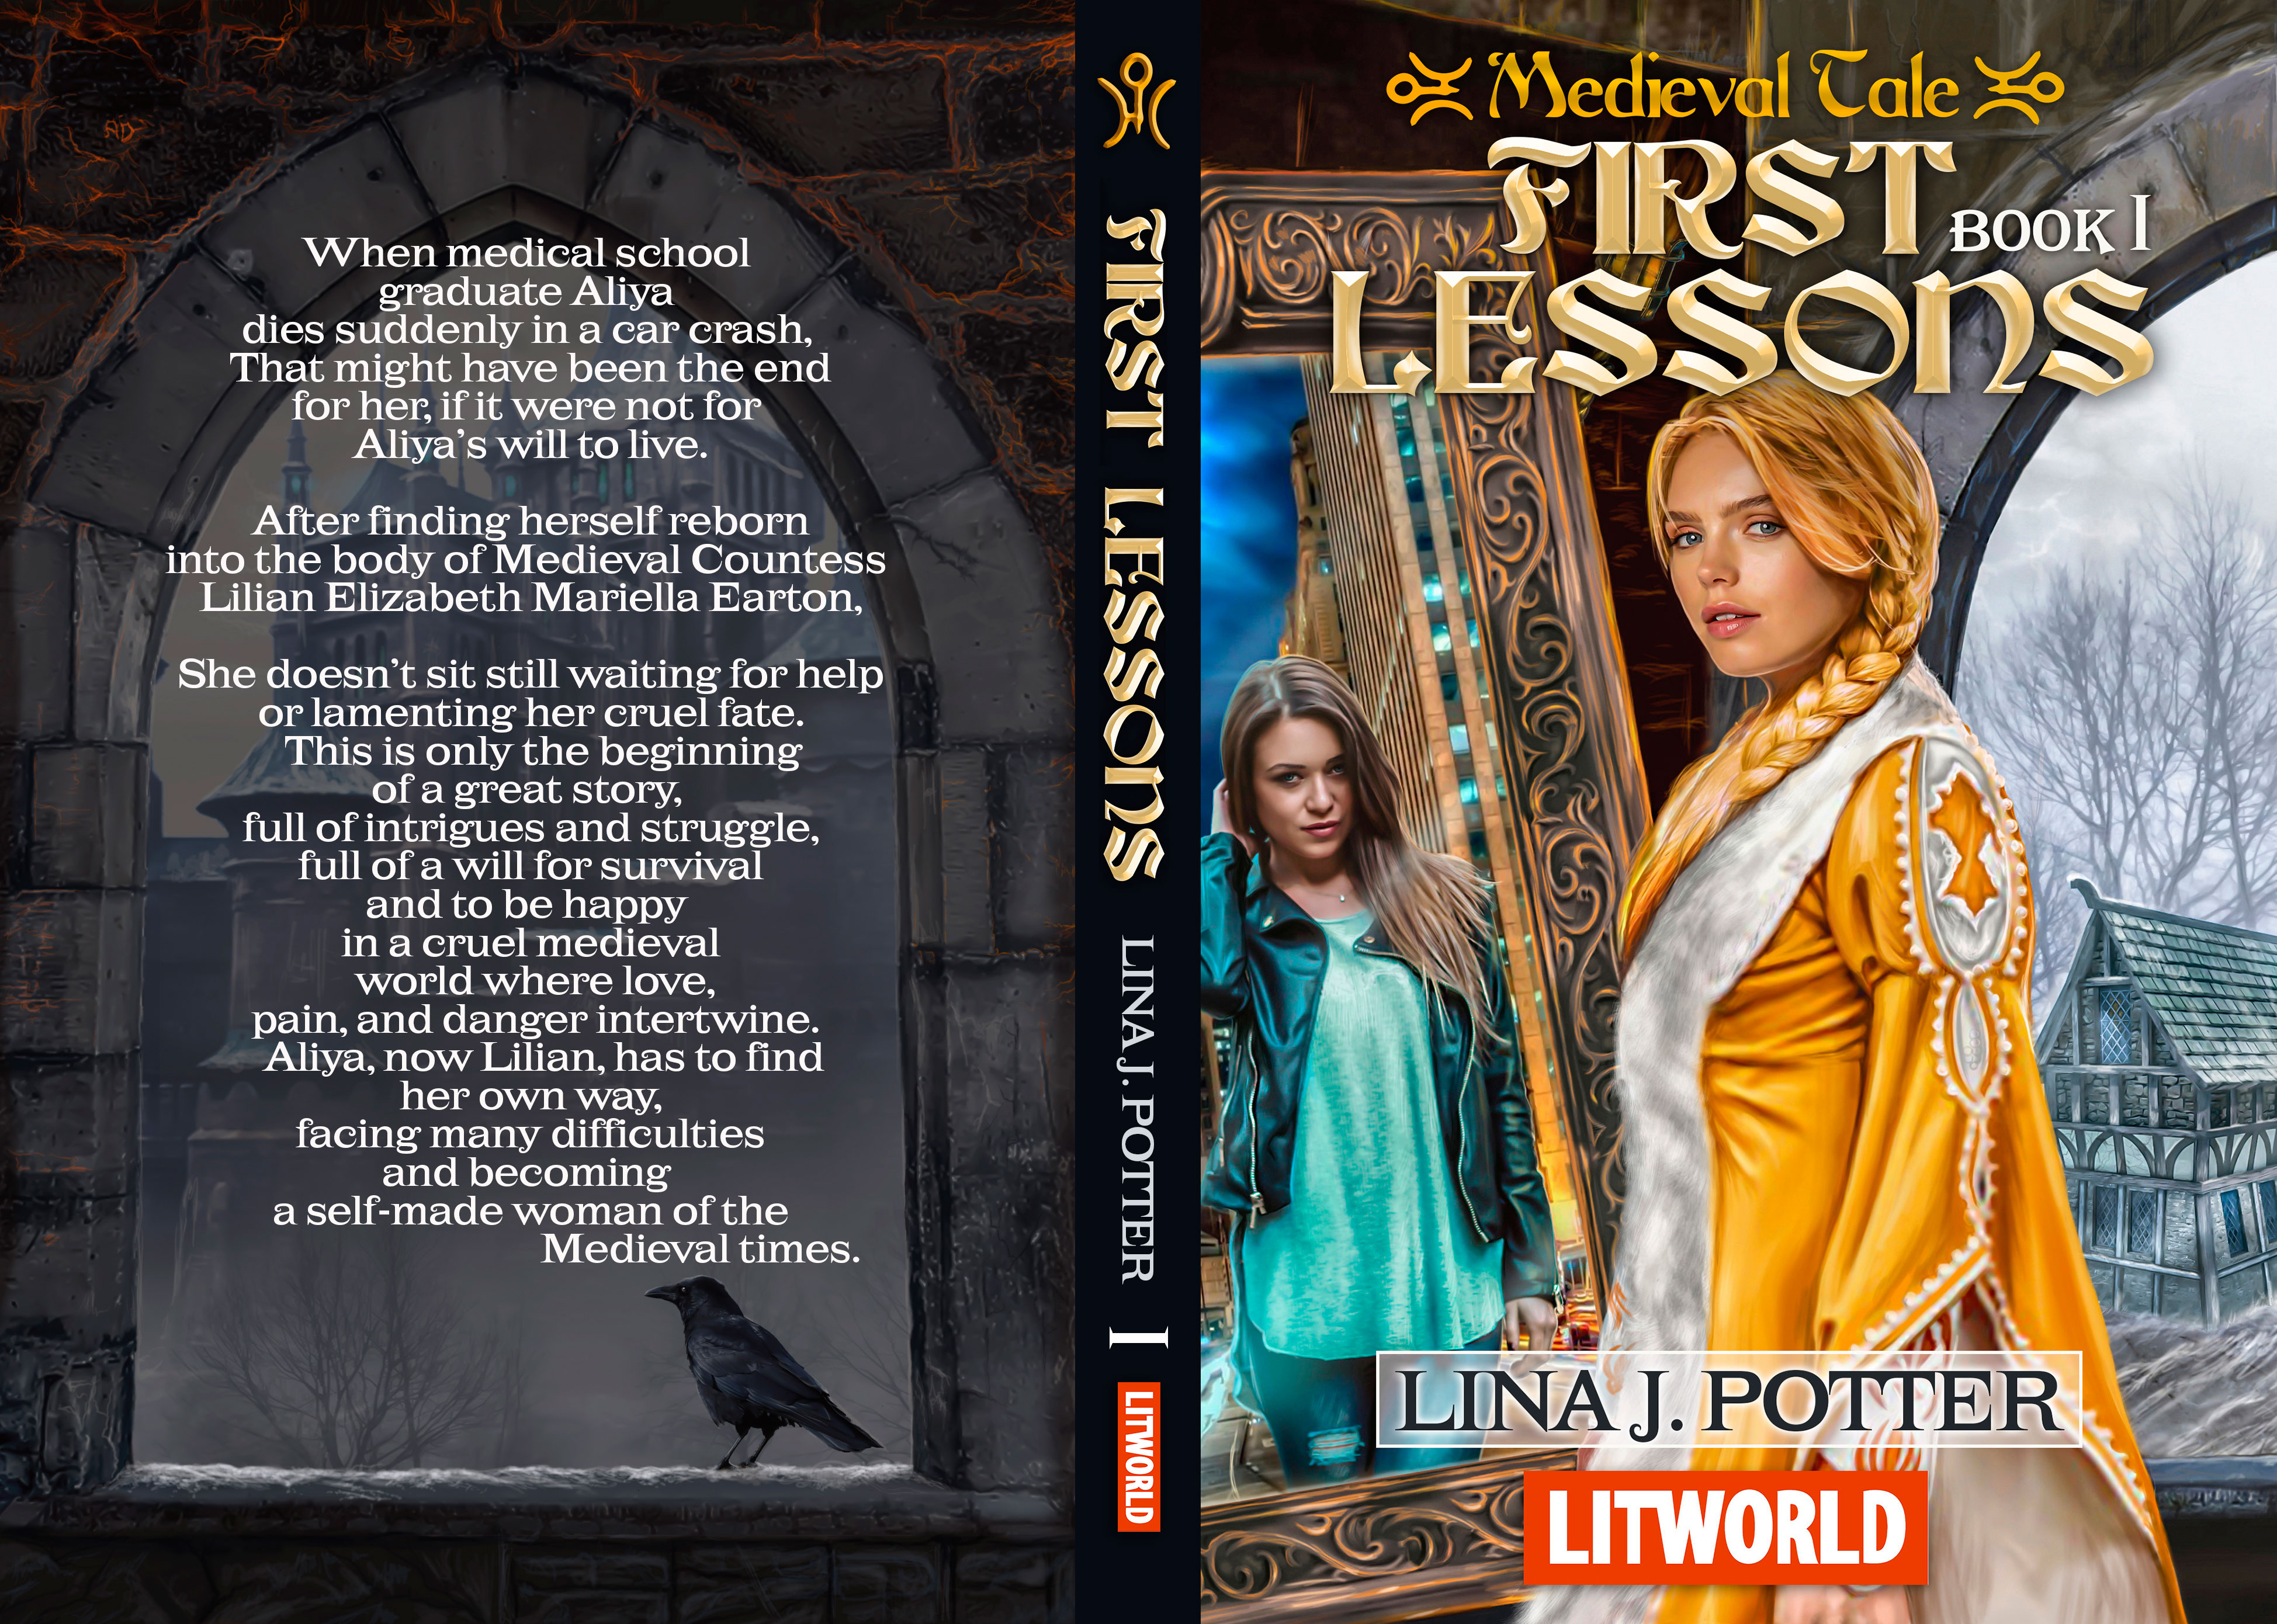 Medieval Tale [Book 1]: Medieval Lessons